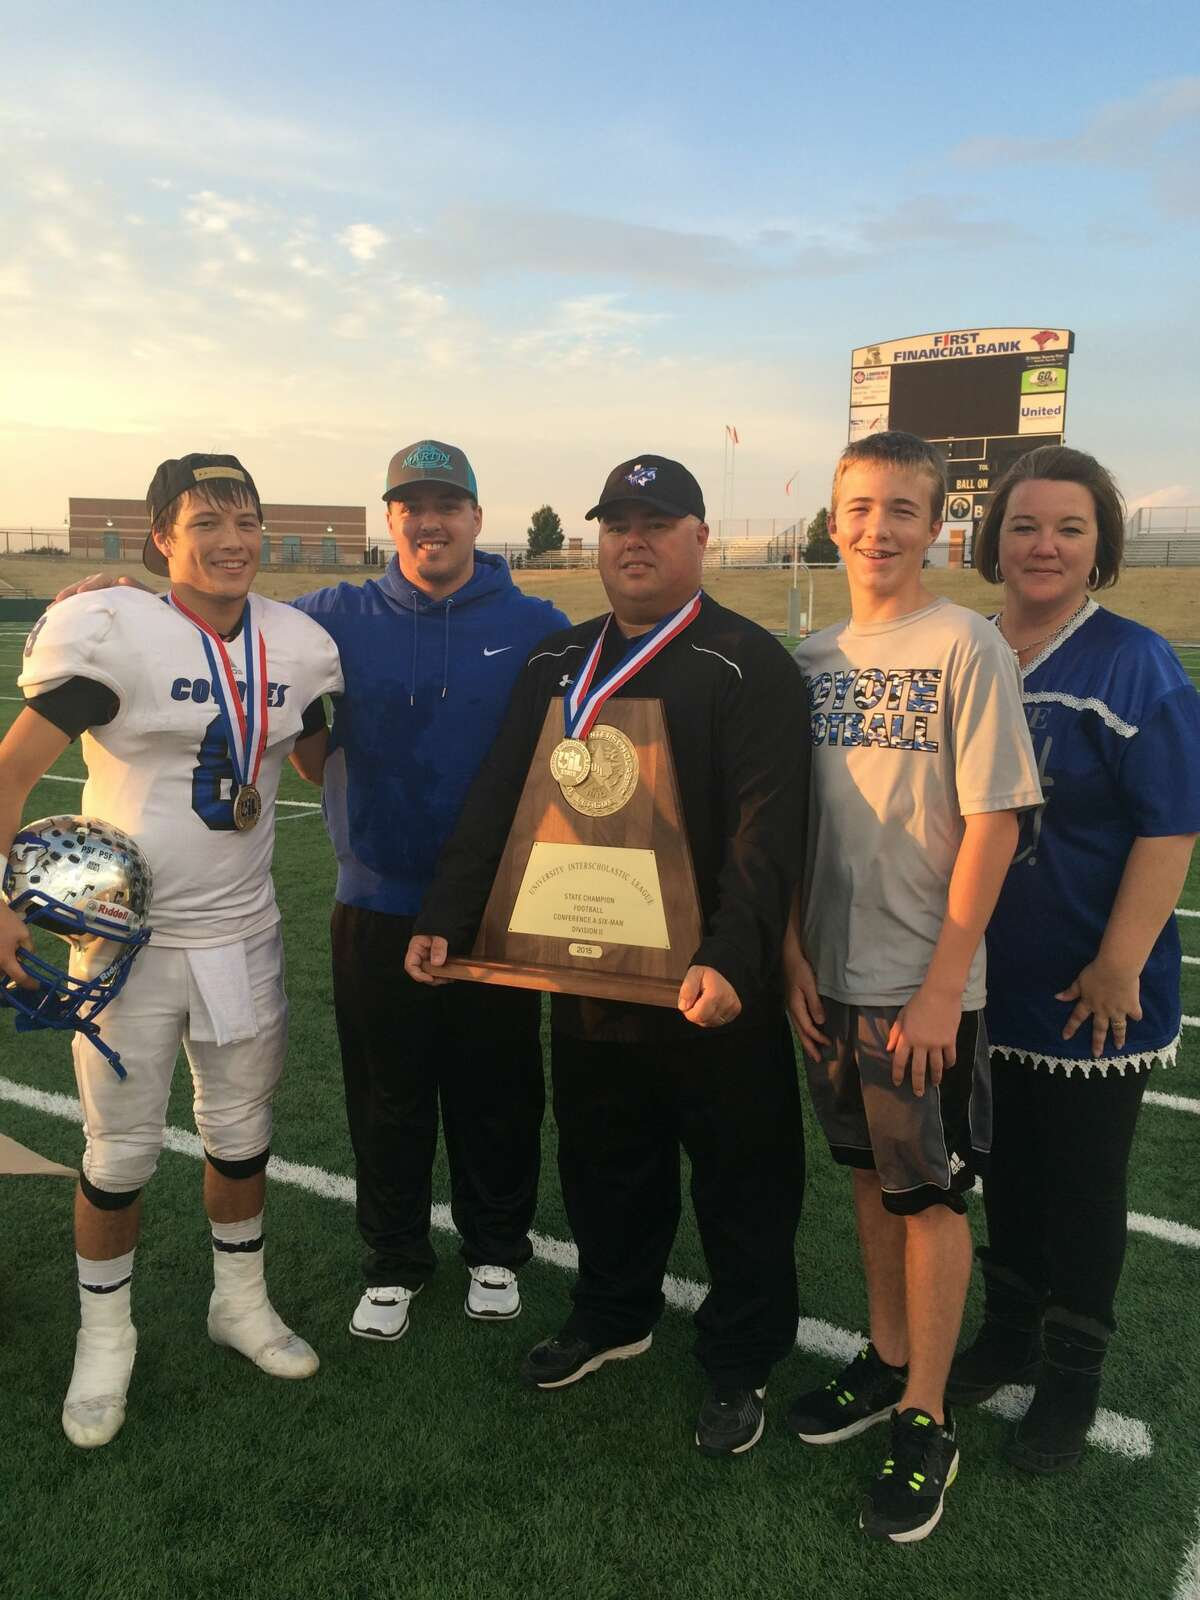 Richland Springs football coach Jerry Burkhart was approved Monday night by Stanton ISD school board to be its next athletic director and head football coach.